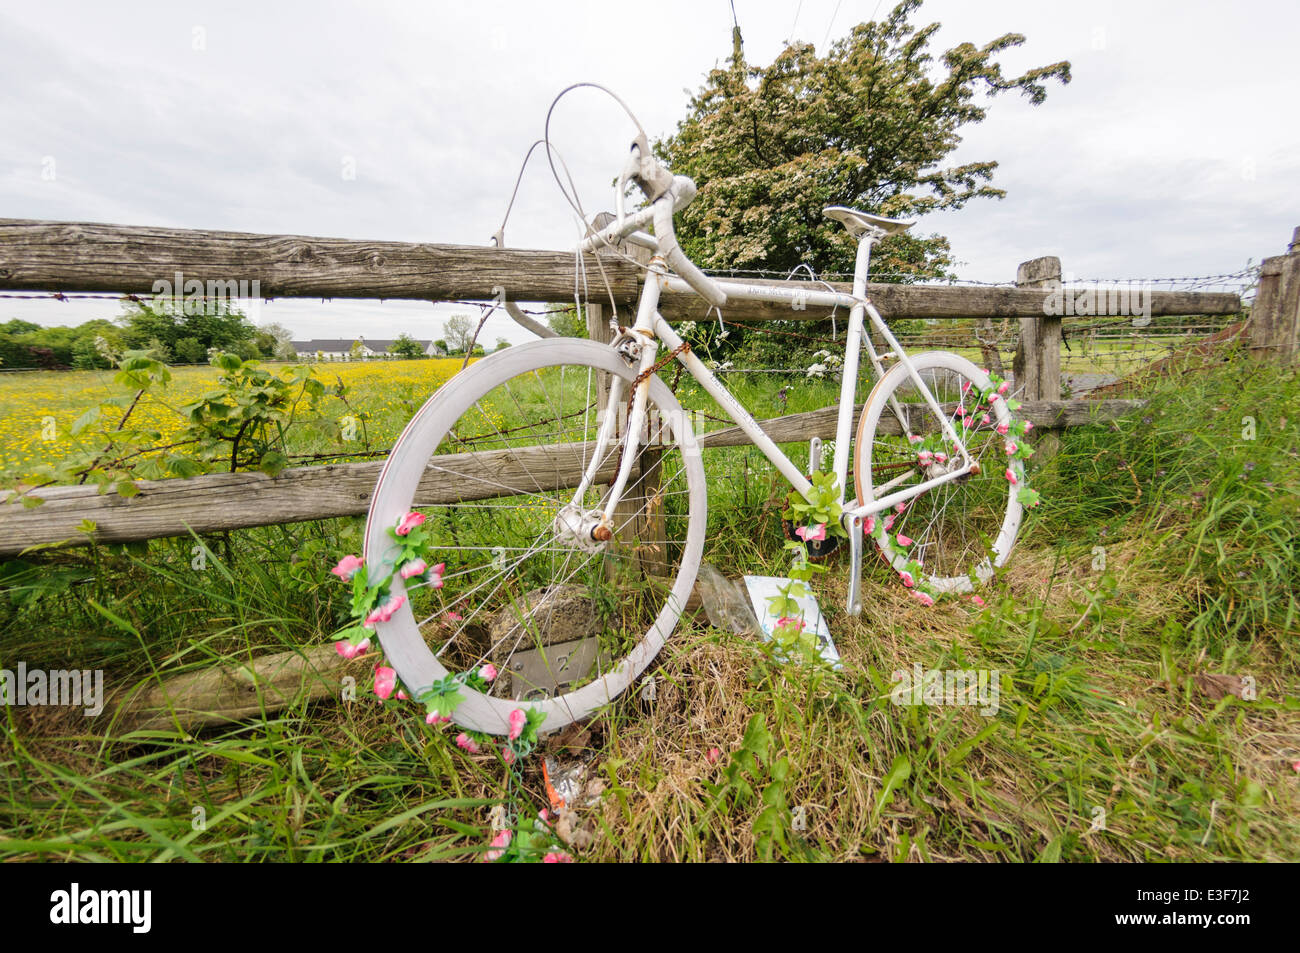 'Ghost Bike' on a rural road in tribute to a cyclist killed in a road traffic accident. - Stock Image